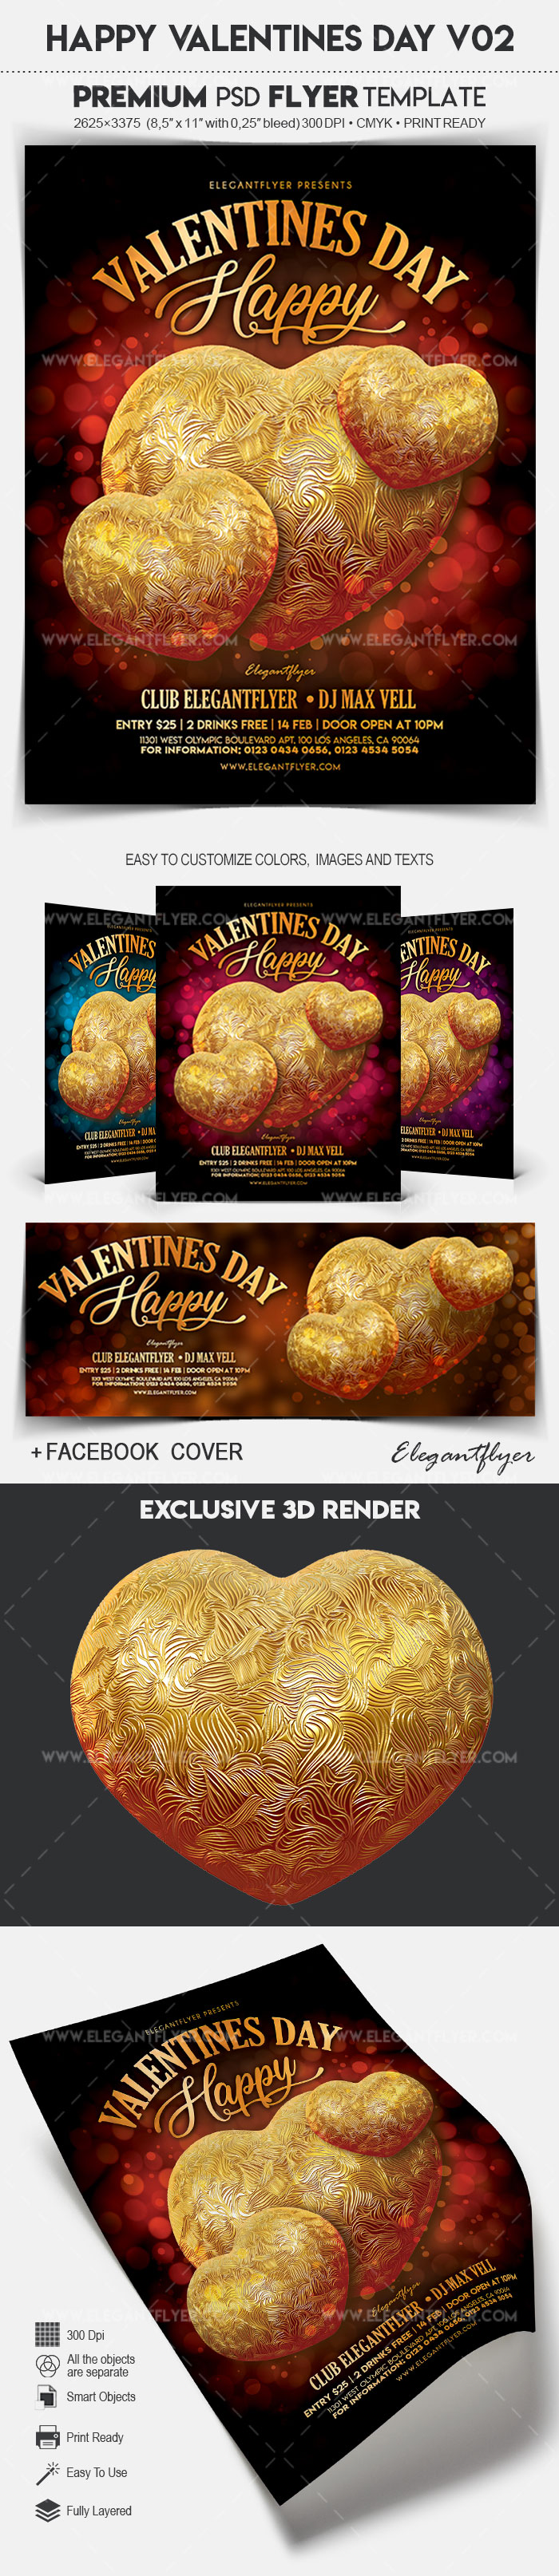 Happy Valentines Day V02 – Flyer PSD Template